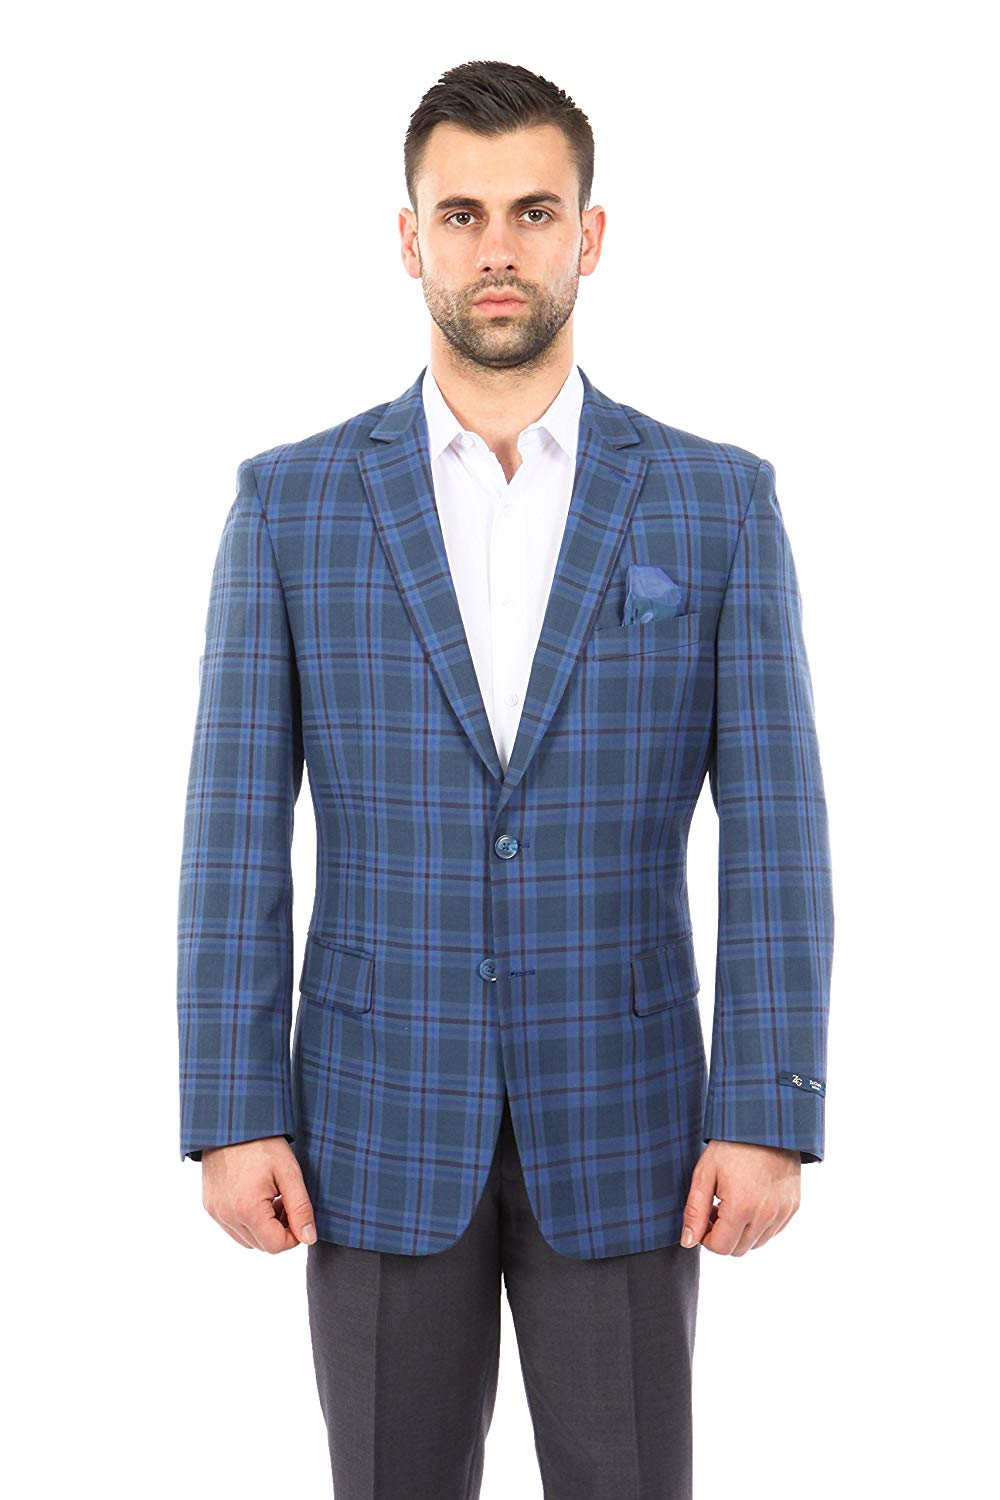 TAZIO Mens Jacket Modern Fit Madras Plaid Sports Coat Blazer